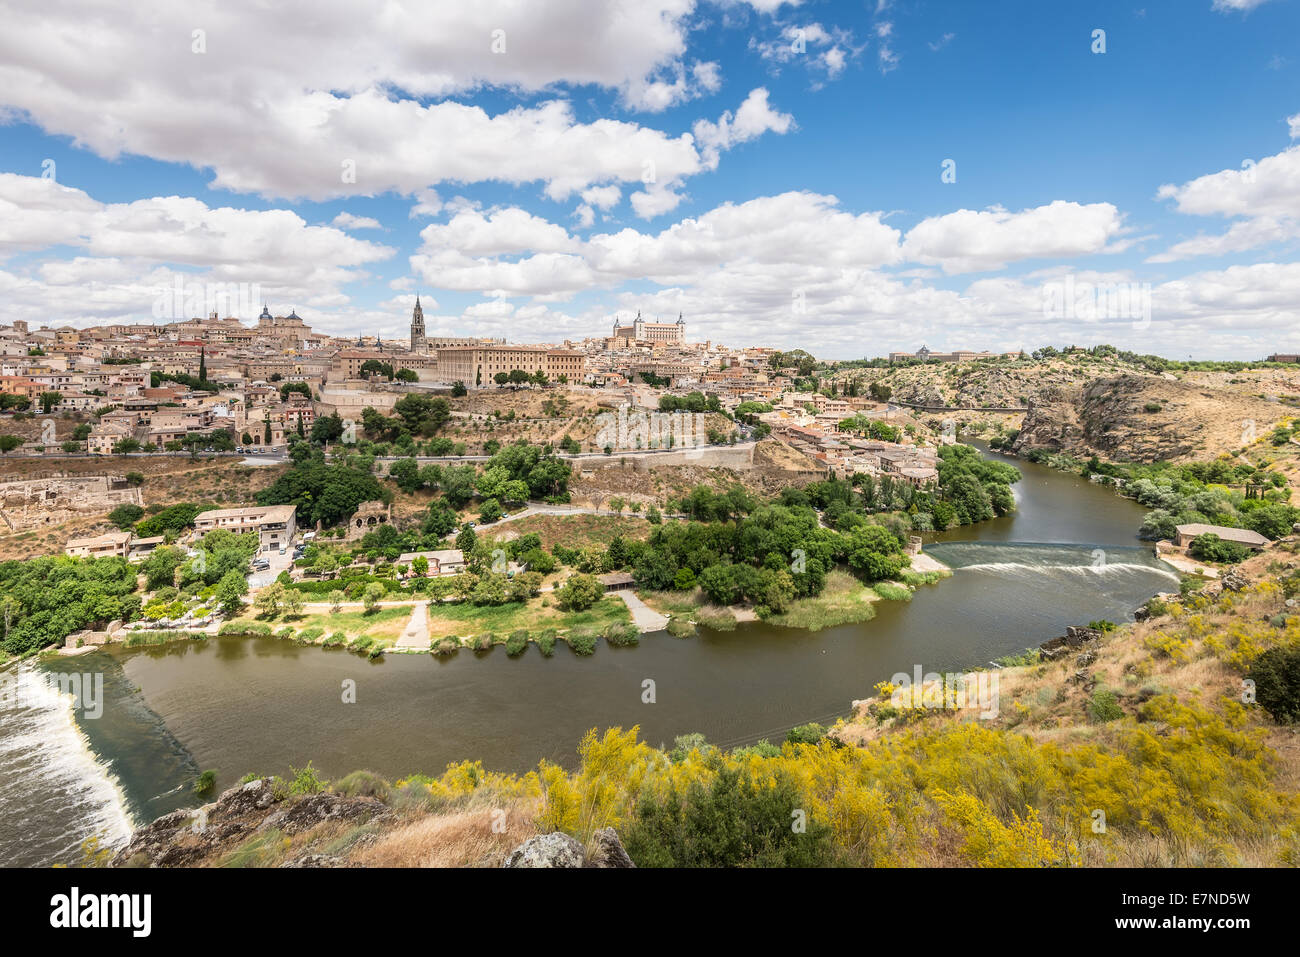 Toledo, beside the Tagus River - Stock Image